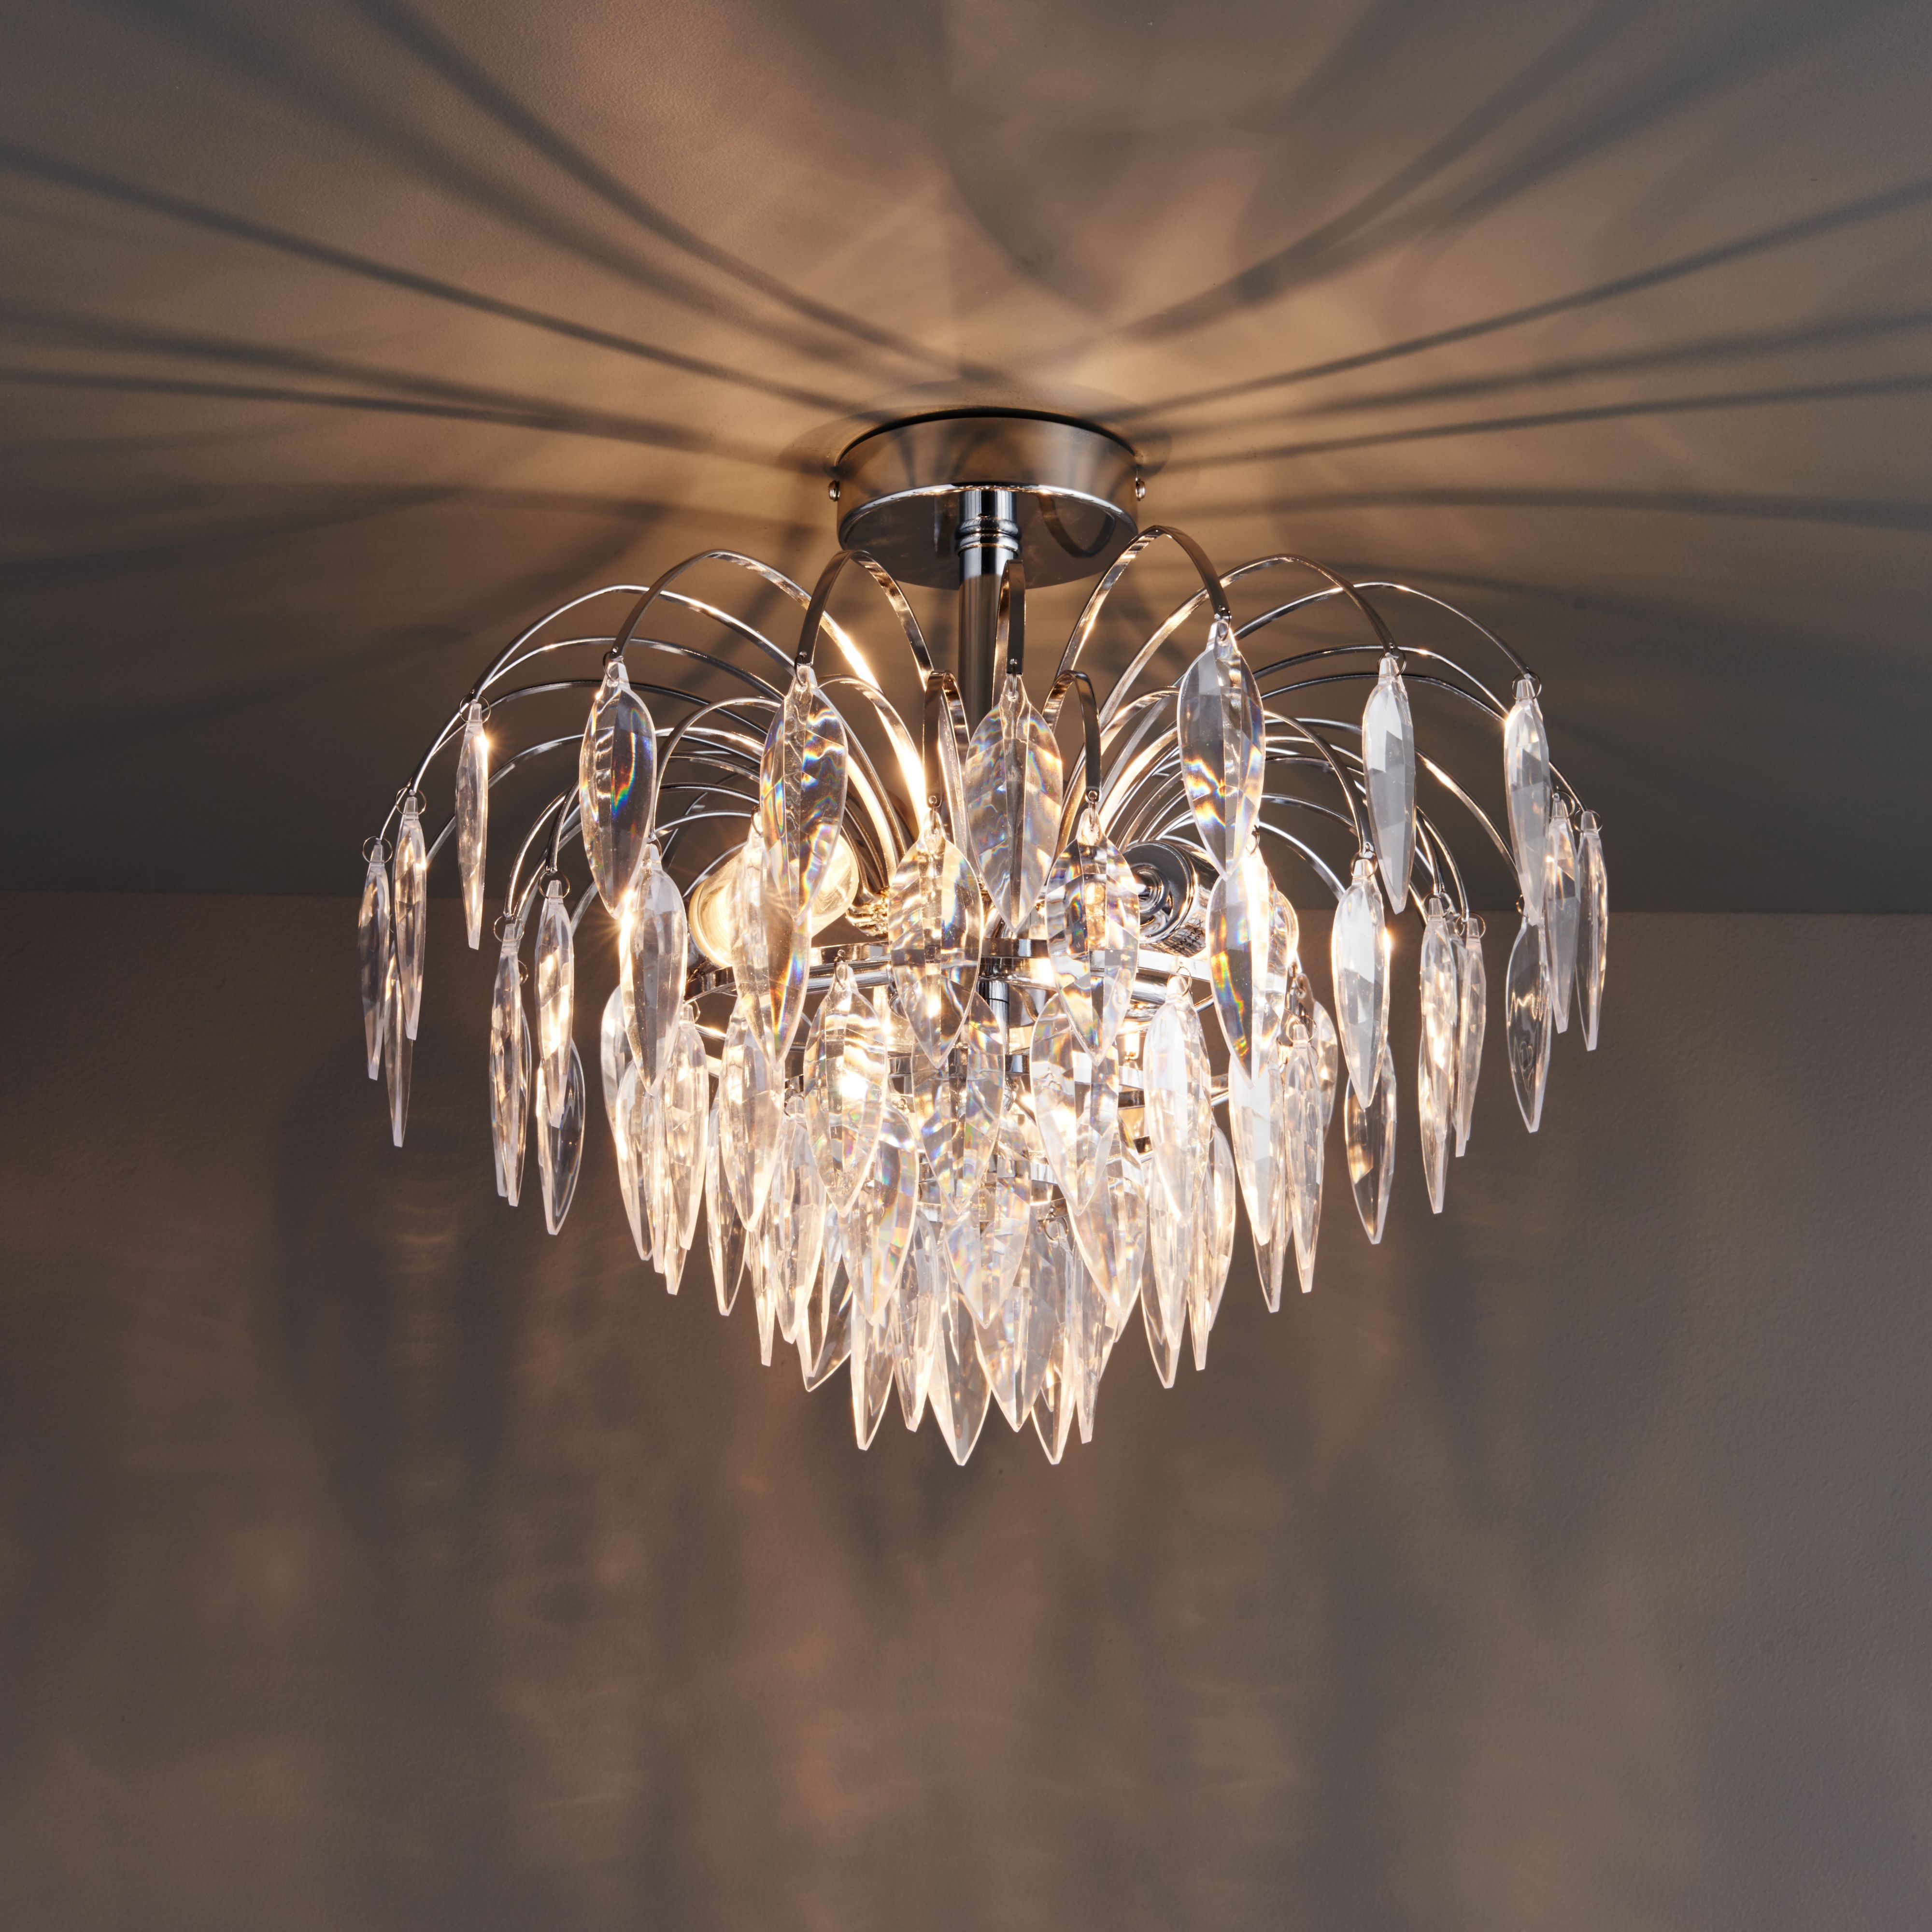 Valetta Faceted Chrome Effect 3 Lamp Ceiling Light